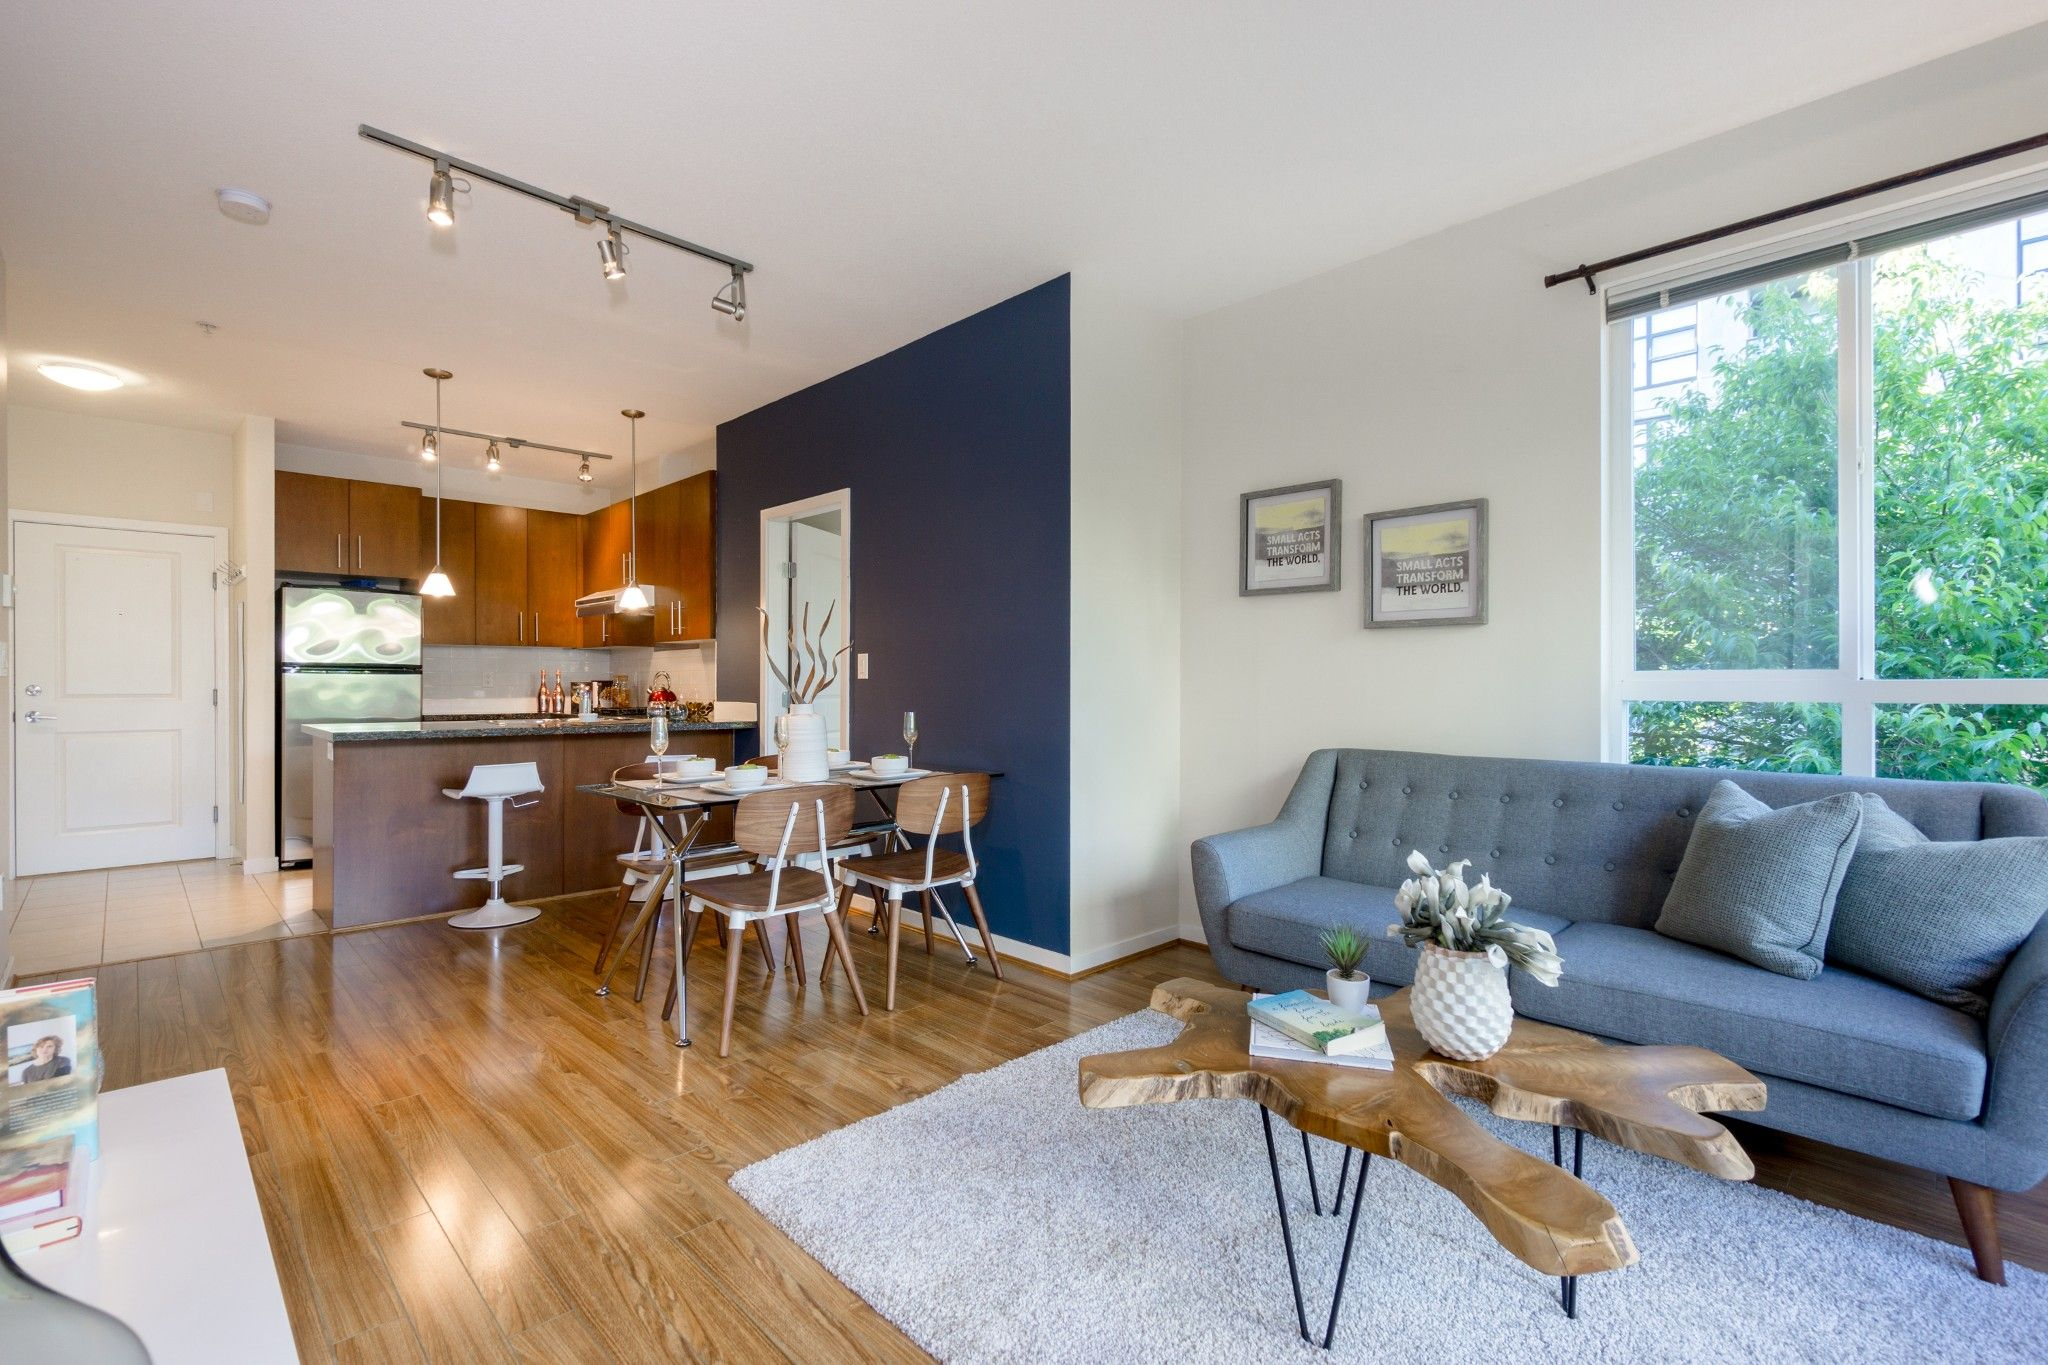 Photo 4: Photos: 208 3551 FOSTER Avenue in Vancouver: Collingwood VE Condo for sale (Vancouver East)  : MLS®# R2291555